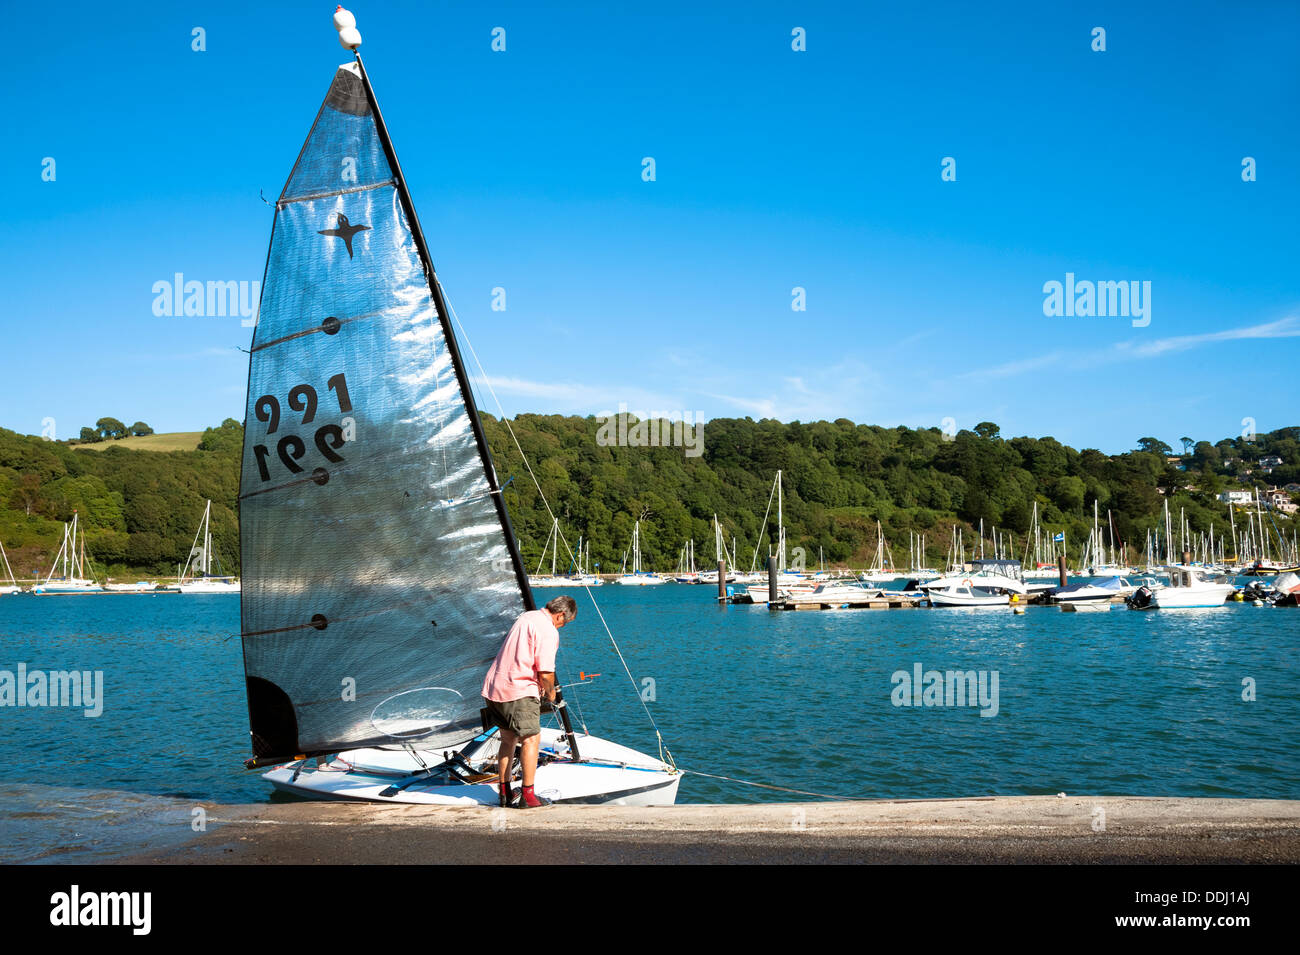 Man getting a sailing dinghy ready for a trip on the river at Dartmouth, Devon, UK. - Stock Image